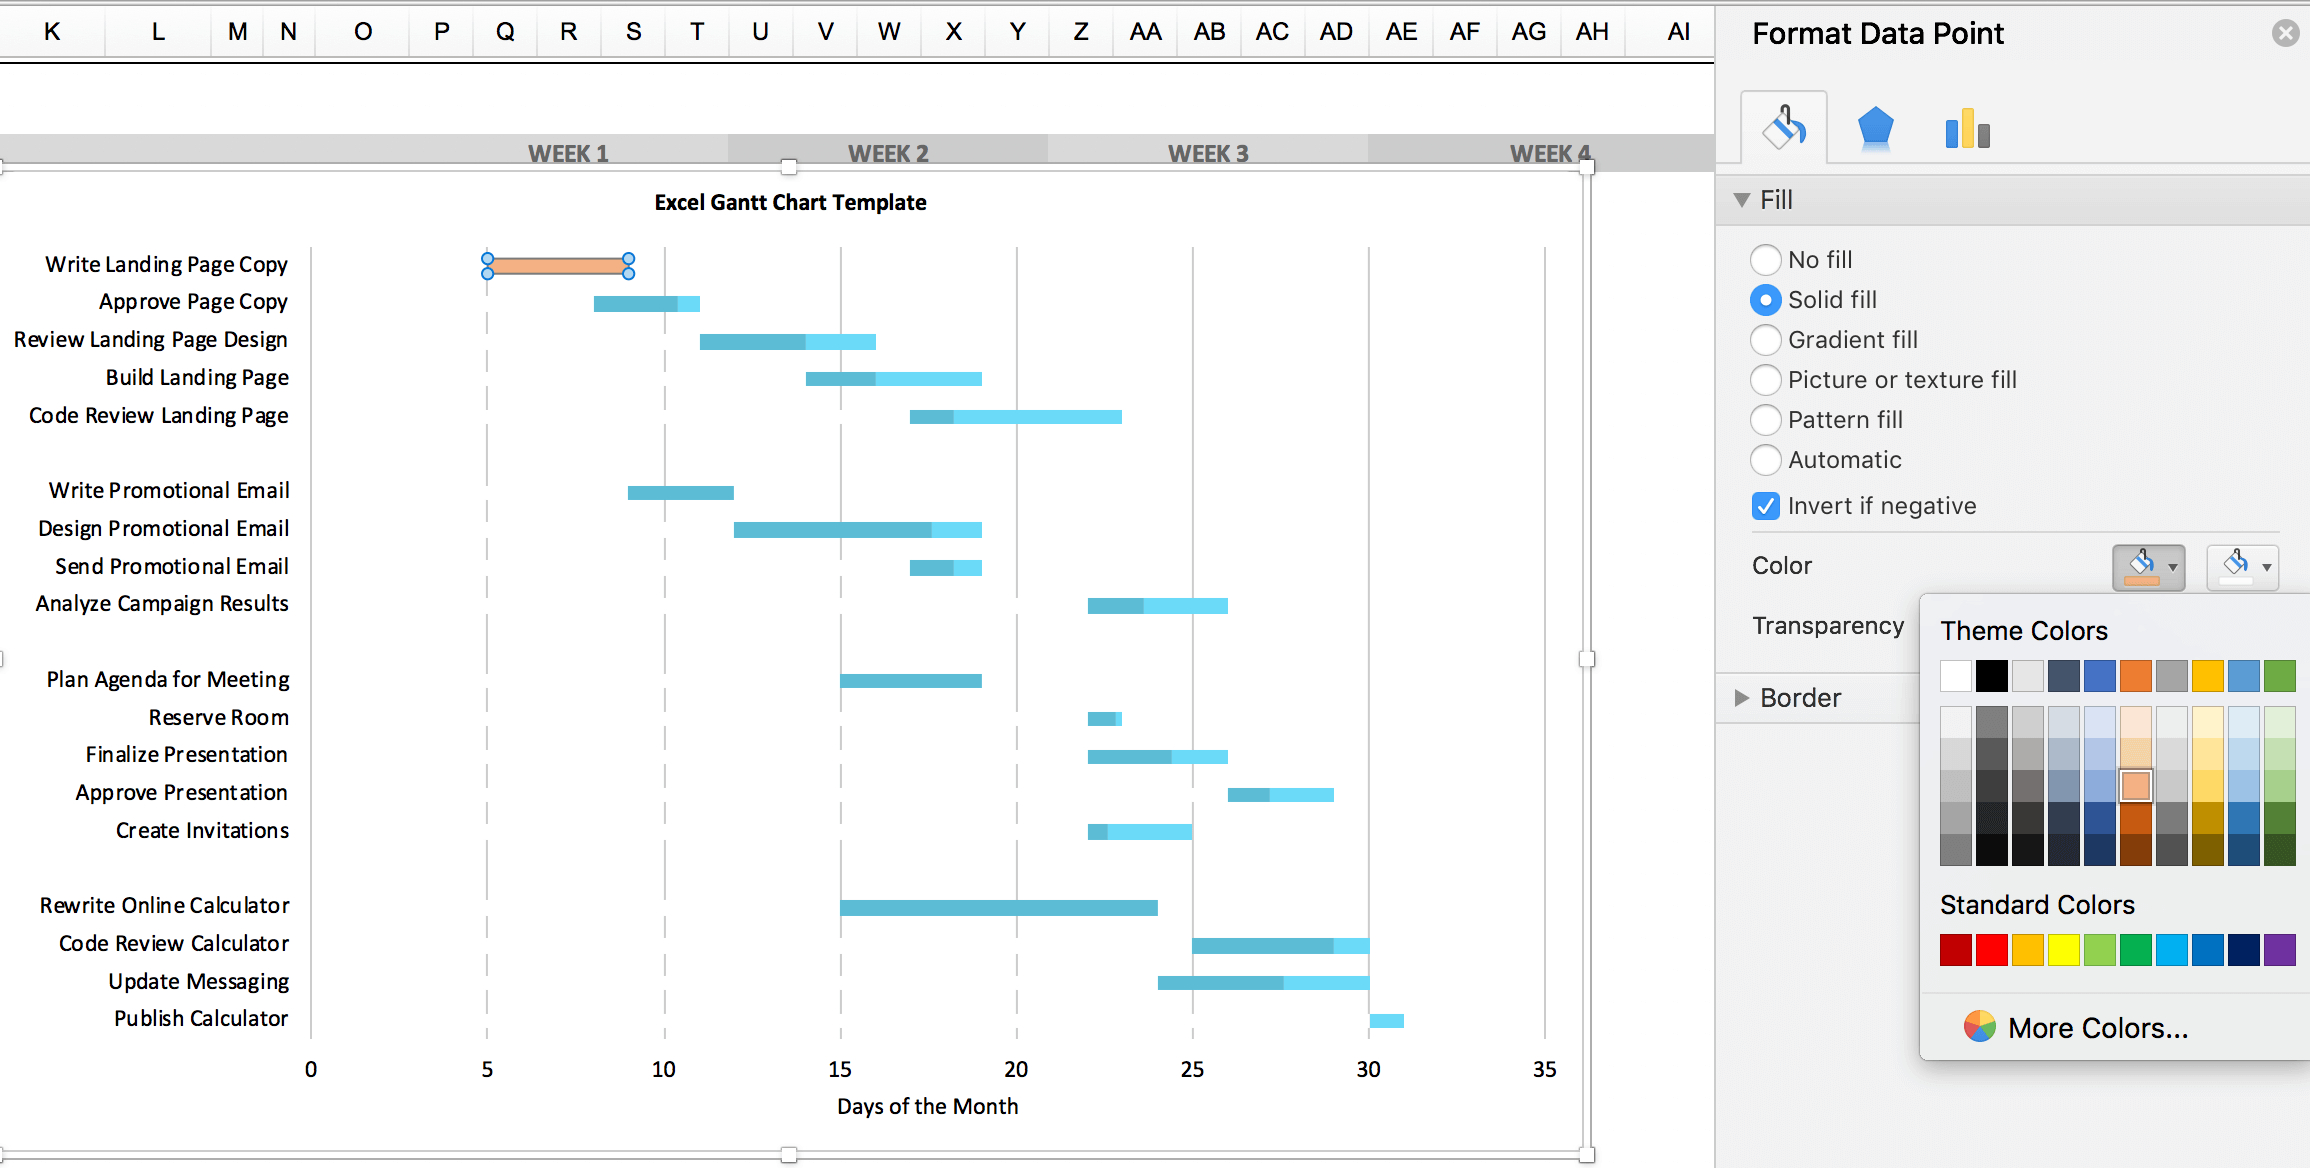 Free Gantt Chart Excel Template: Download Now | Teamgantt Throughout Gantt Chart Template Excel